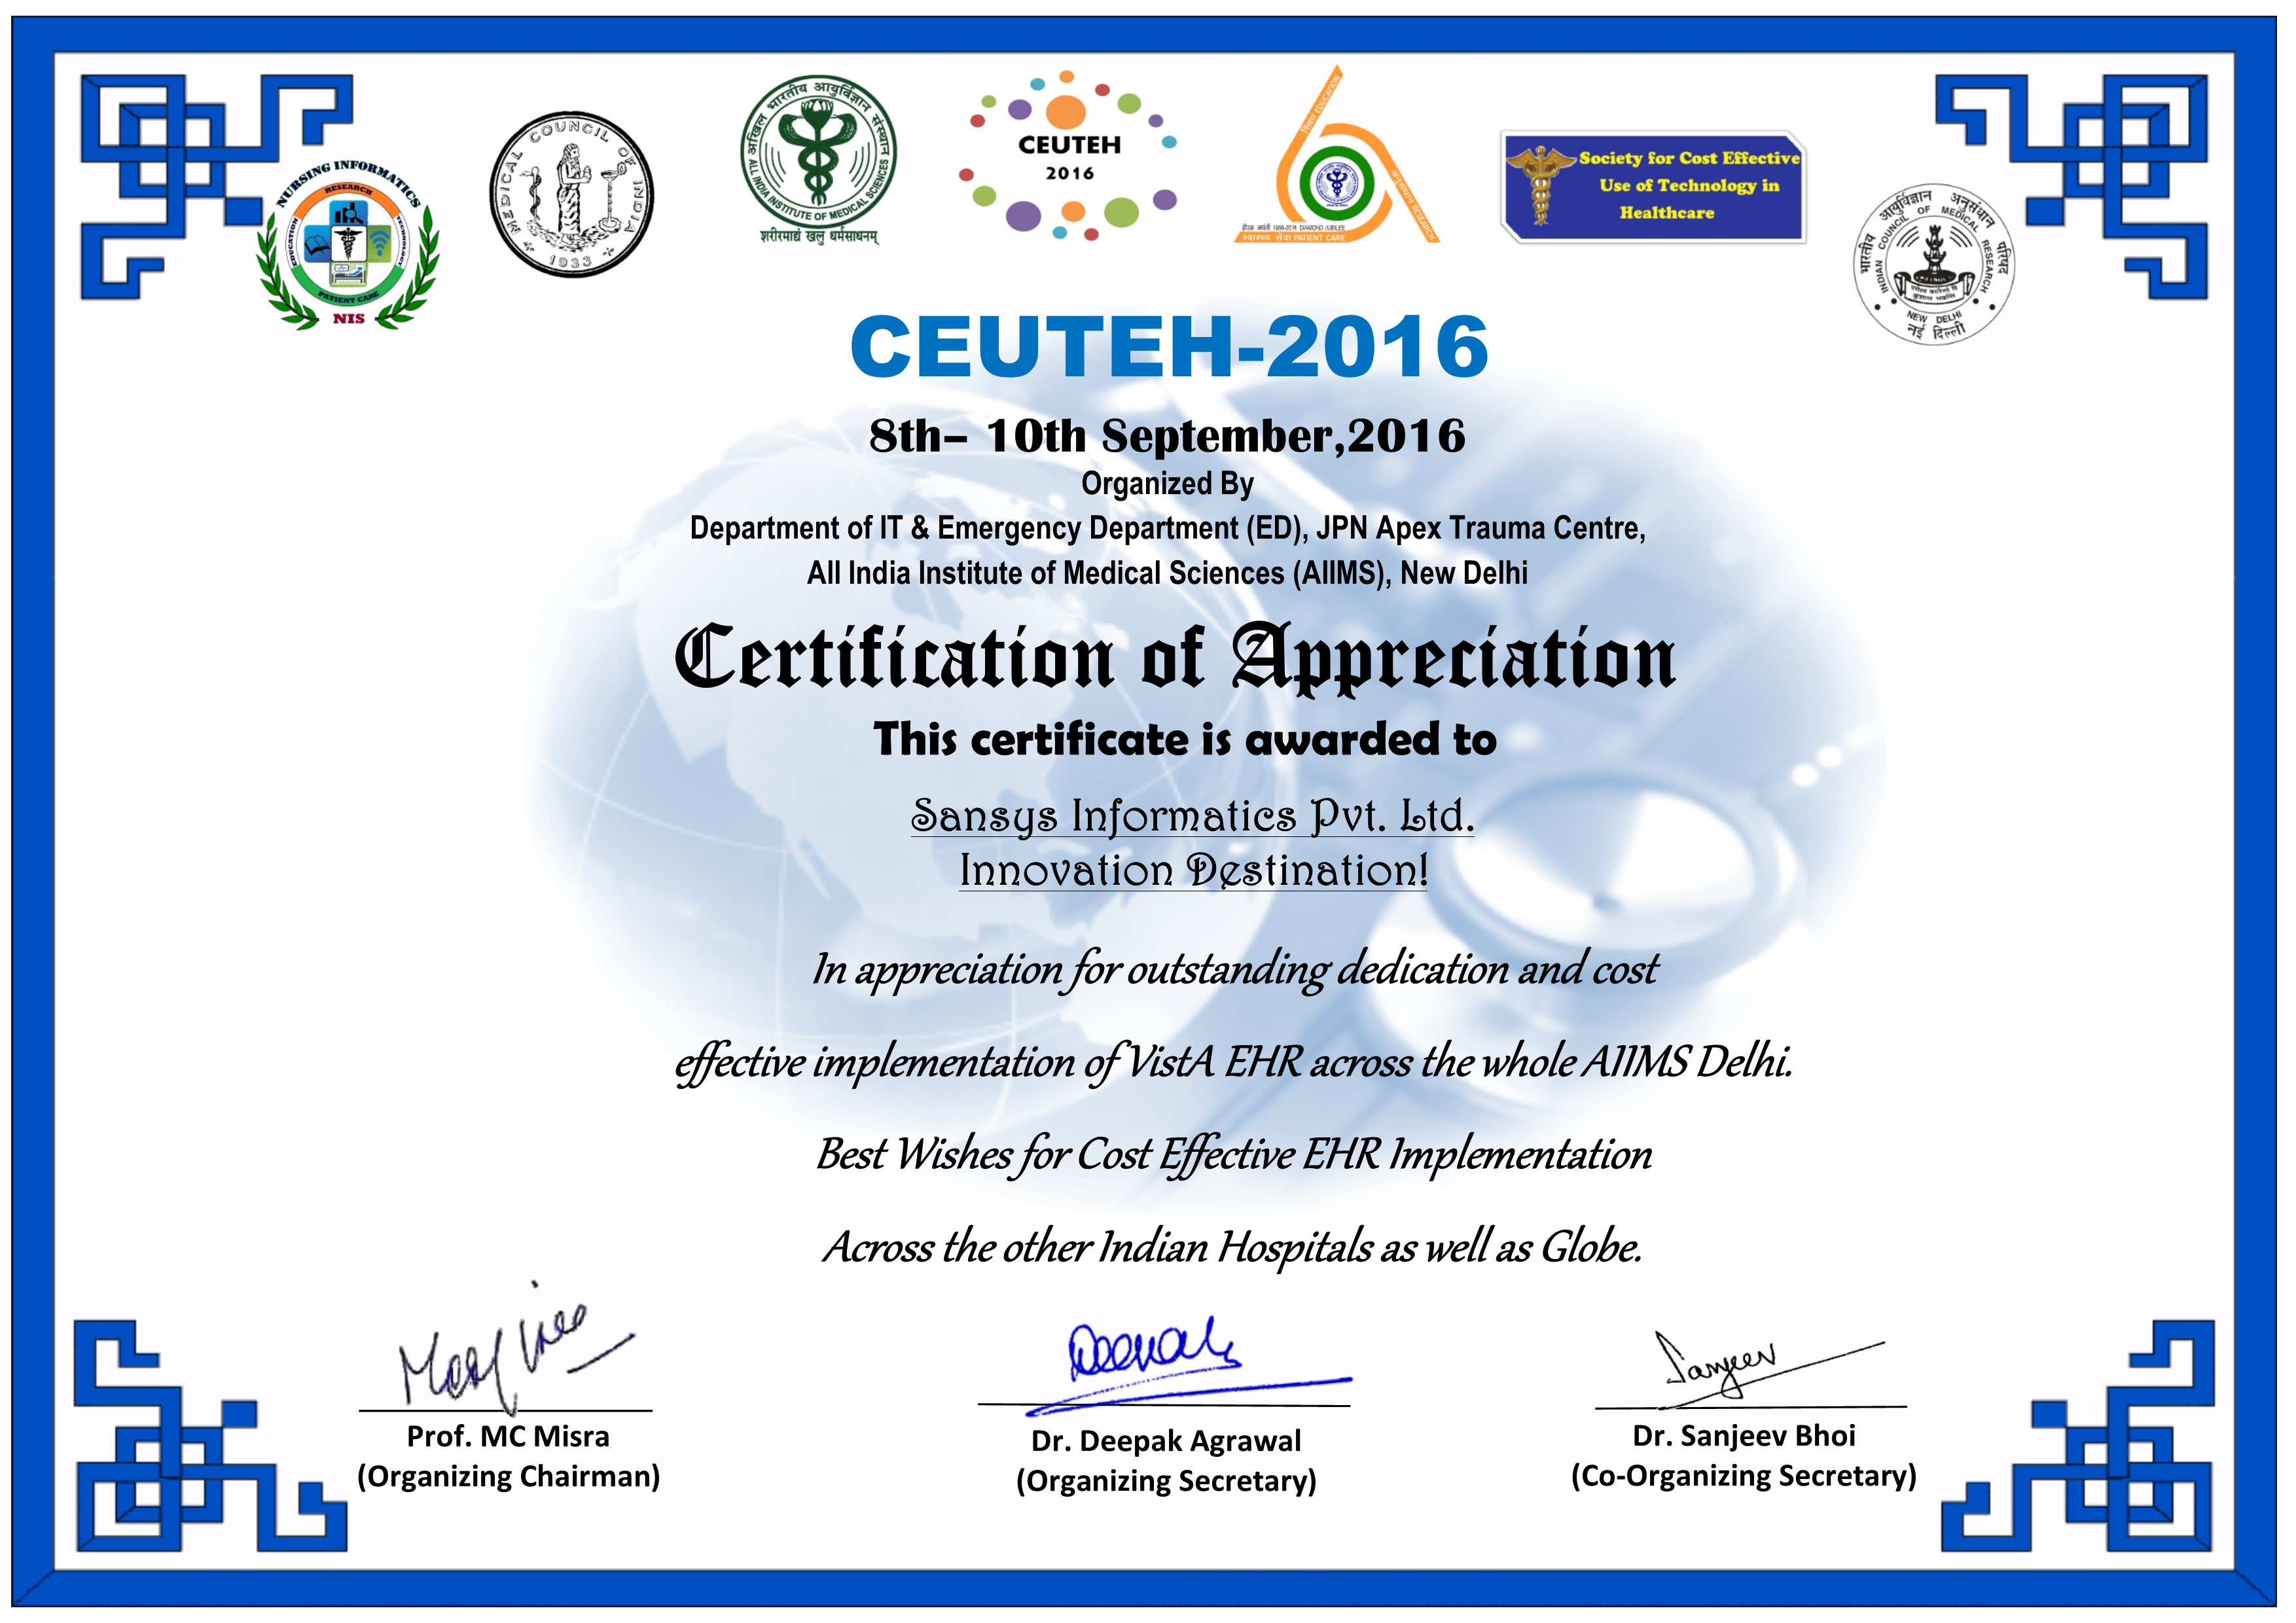 Sansys informatics certification of appreciation for cost effective implementation of vista ehr across the whole aiims delhi 1betcityfo Images